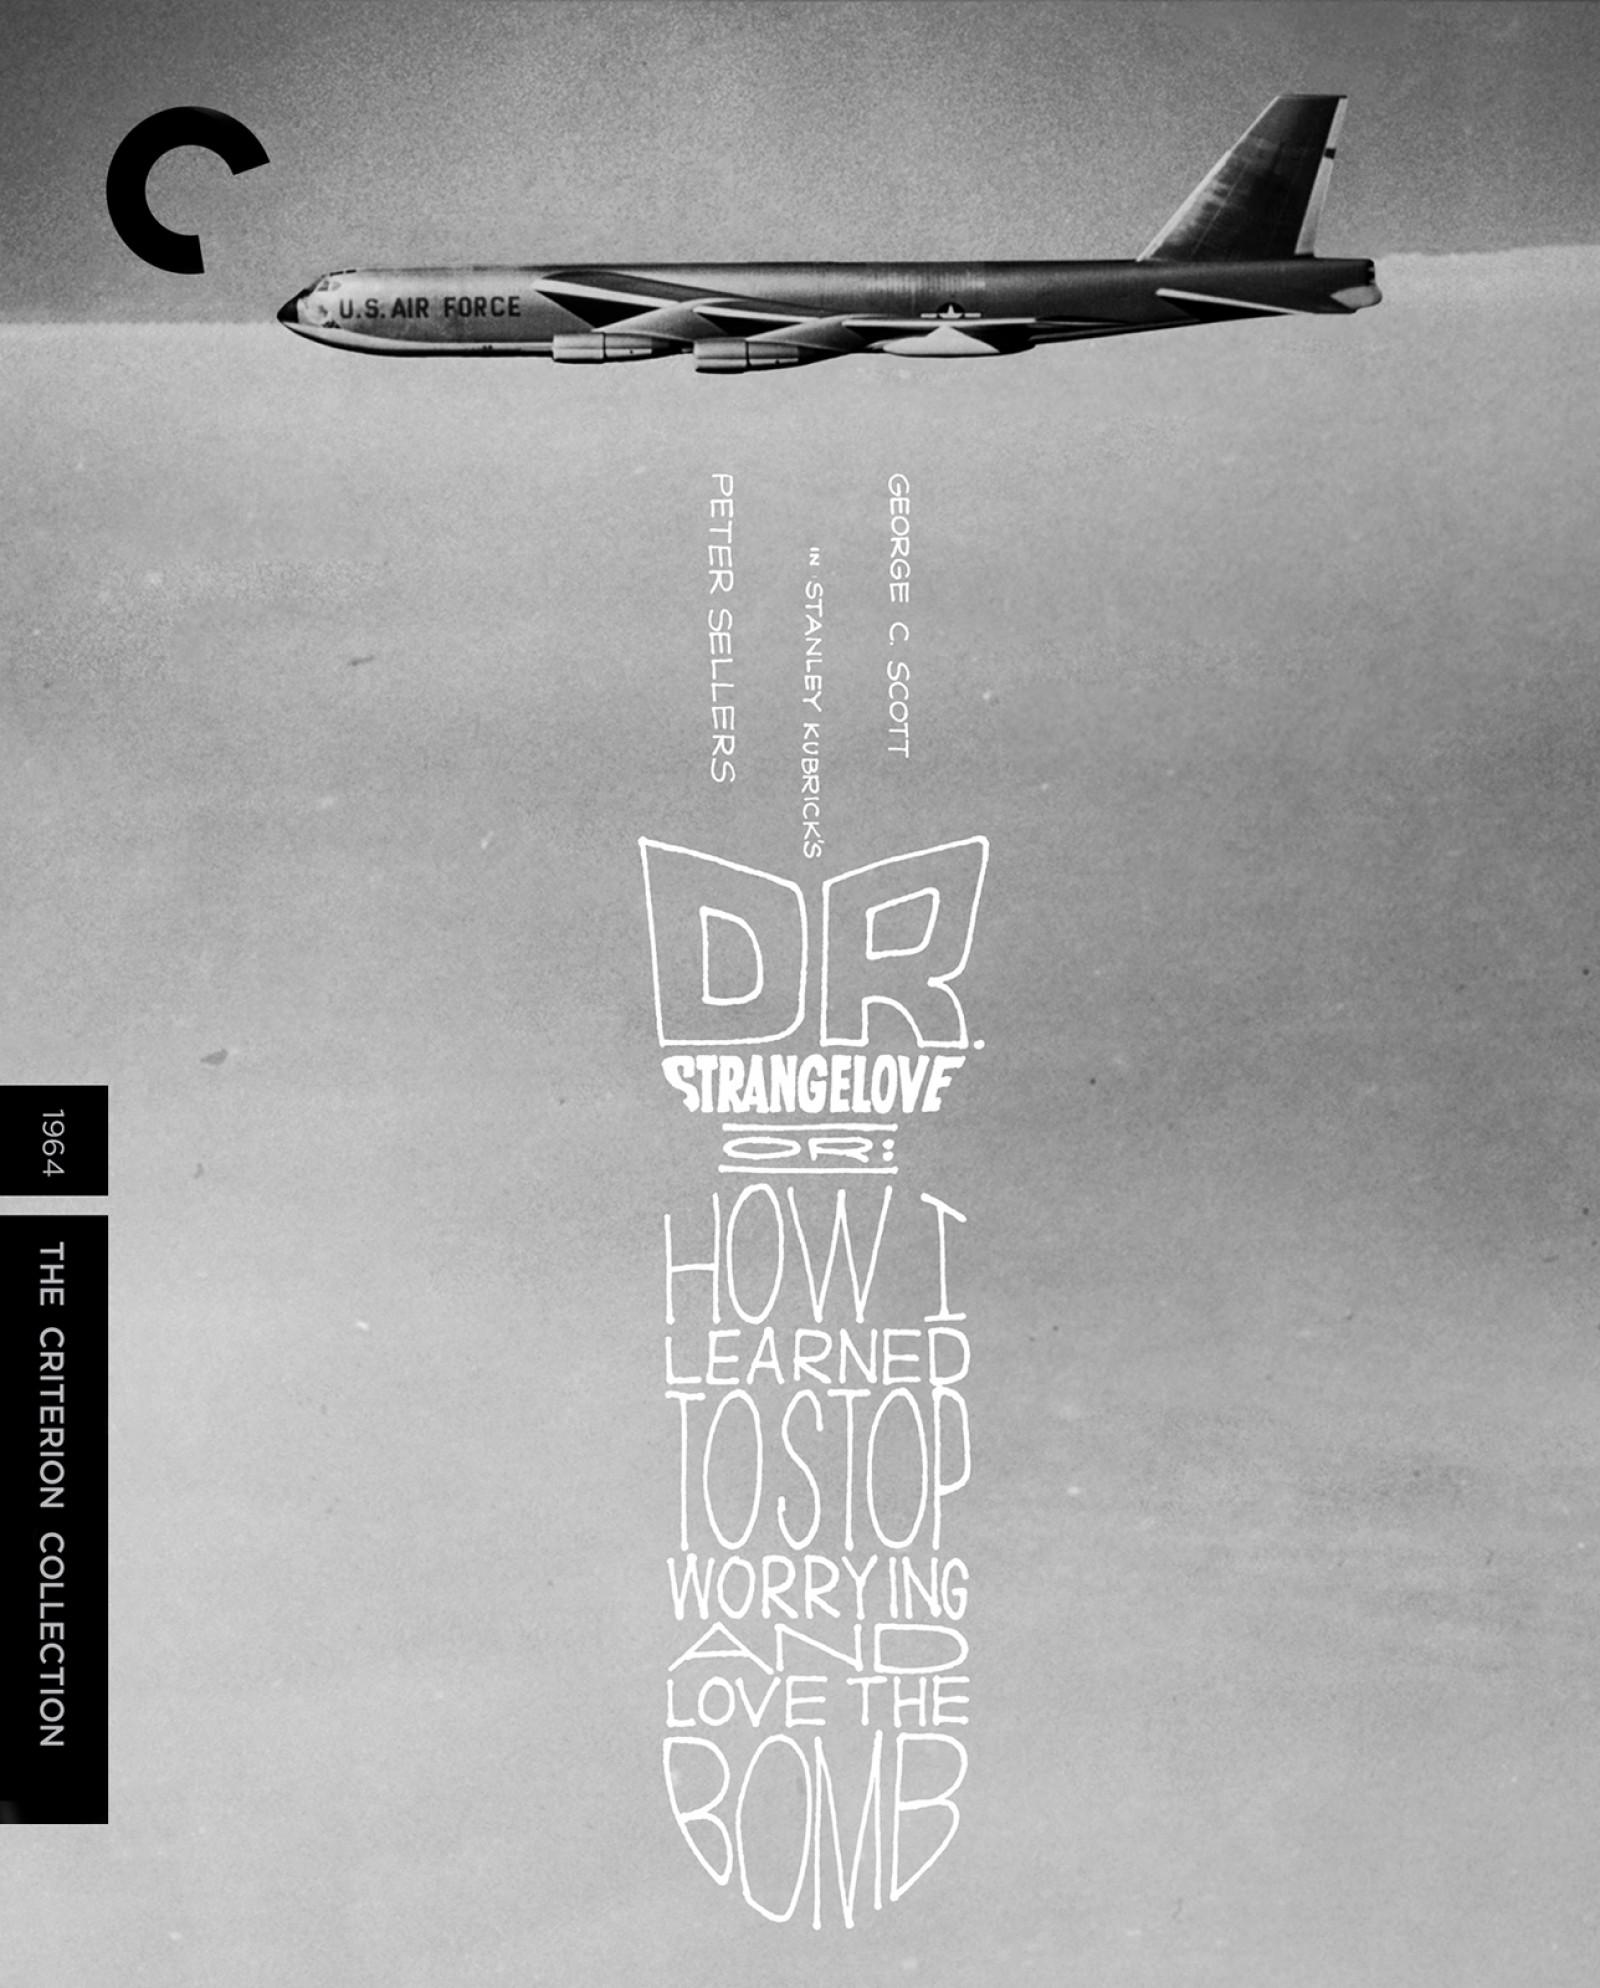 Dr. Strangelove, or: How I Learned to Stop Worrying and Love the